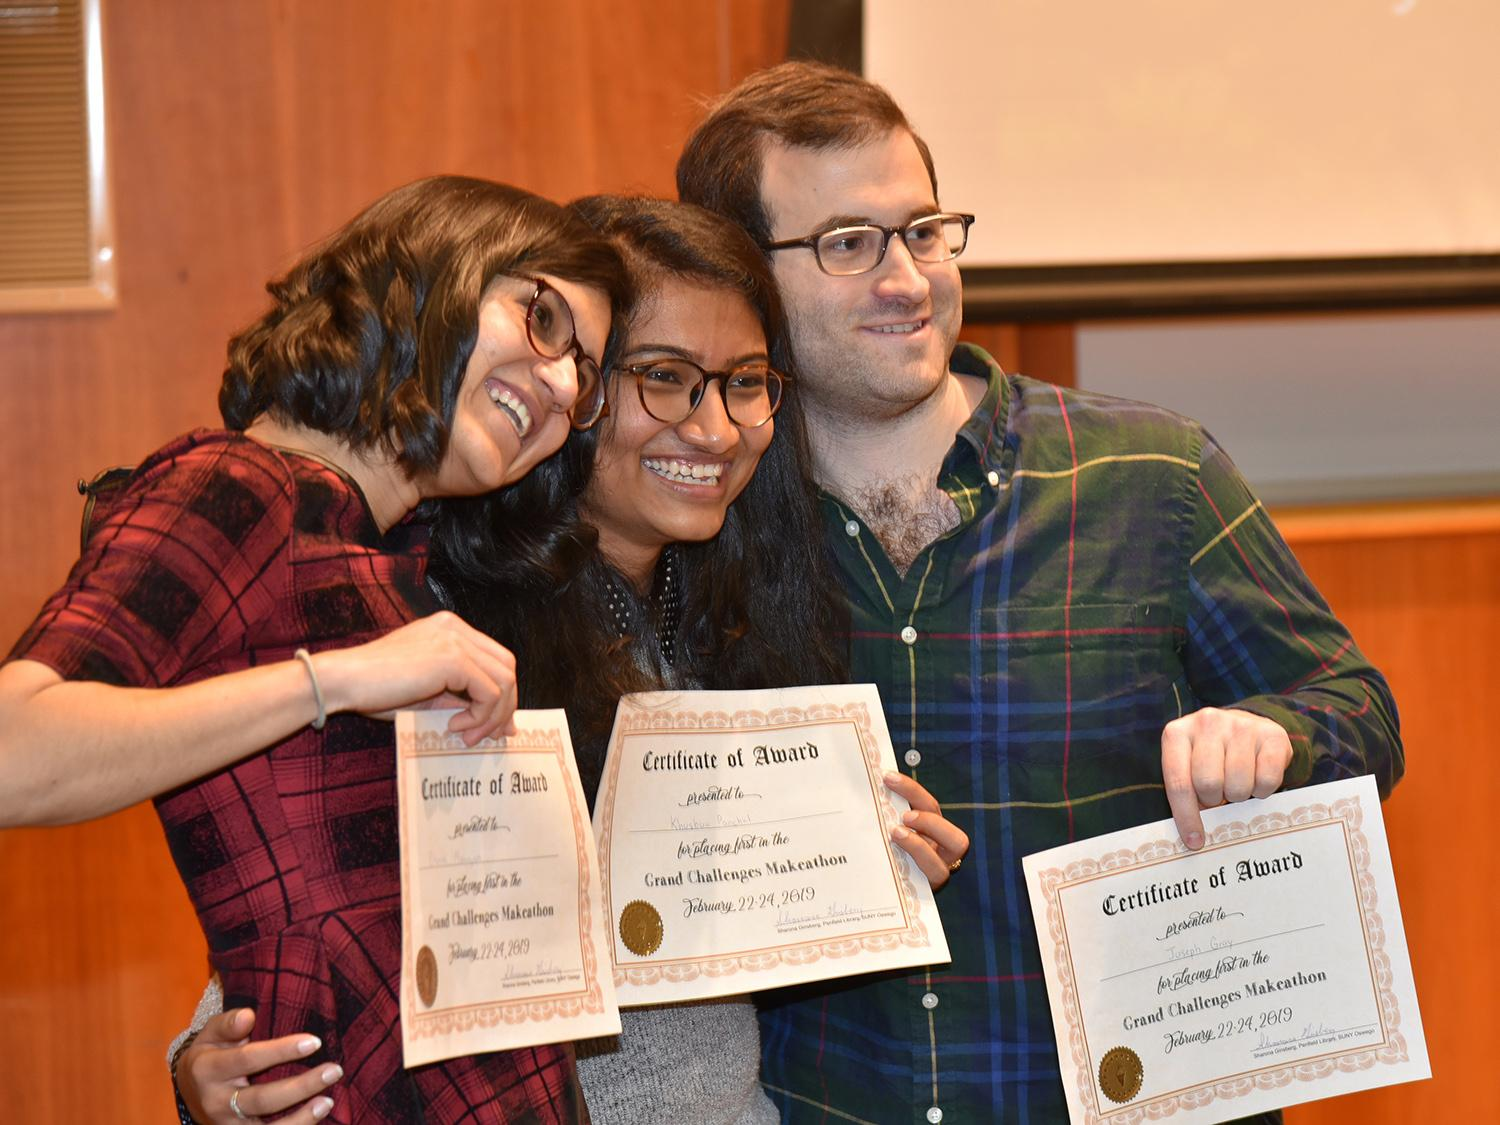 Three students with certificates after their app proposal won Grand Challenges Makeathon